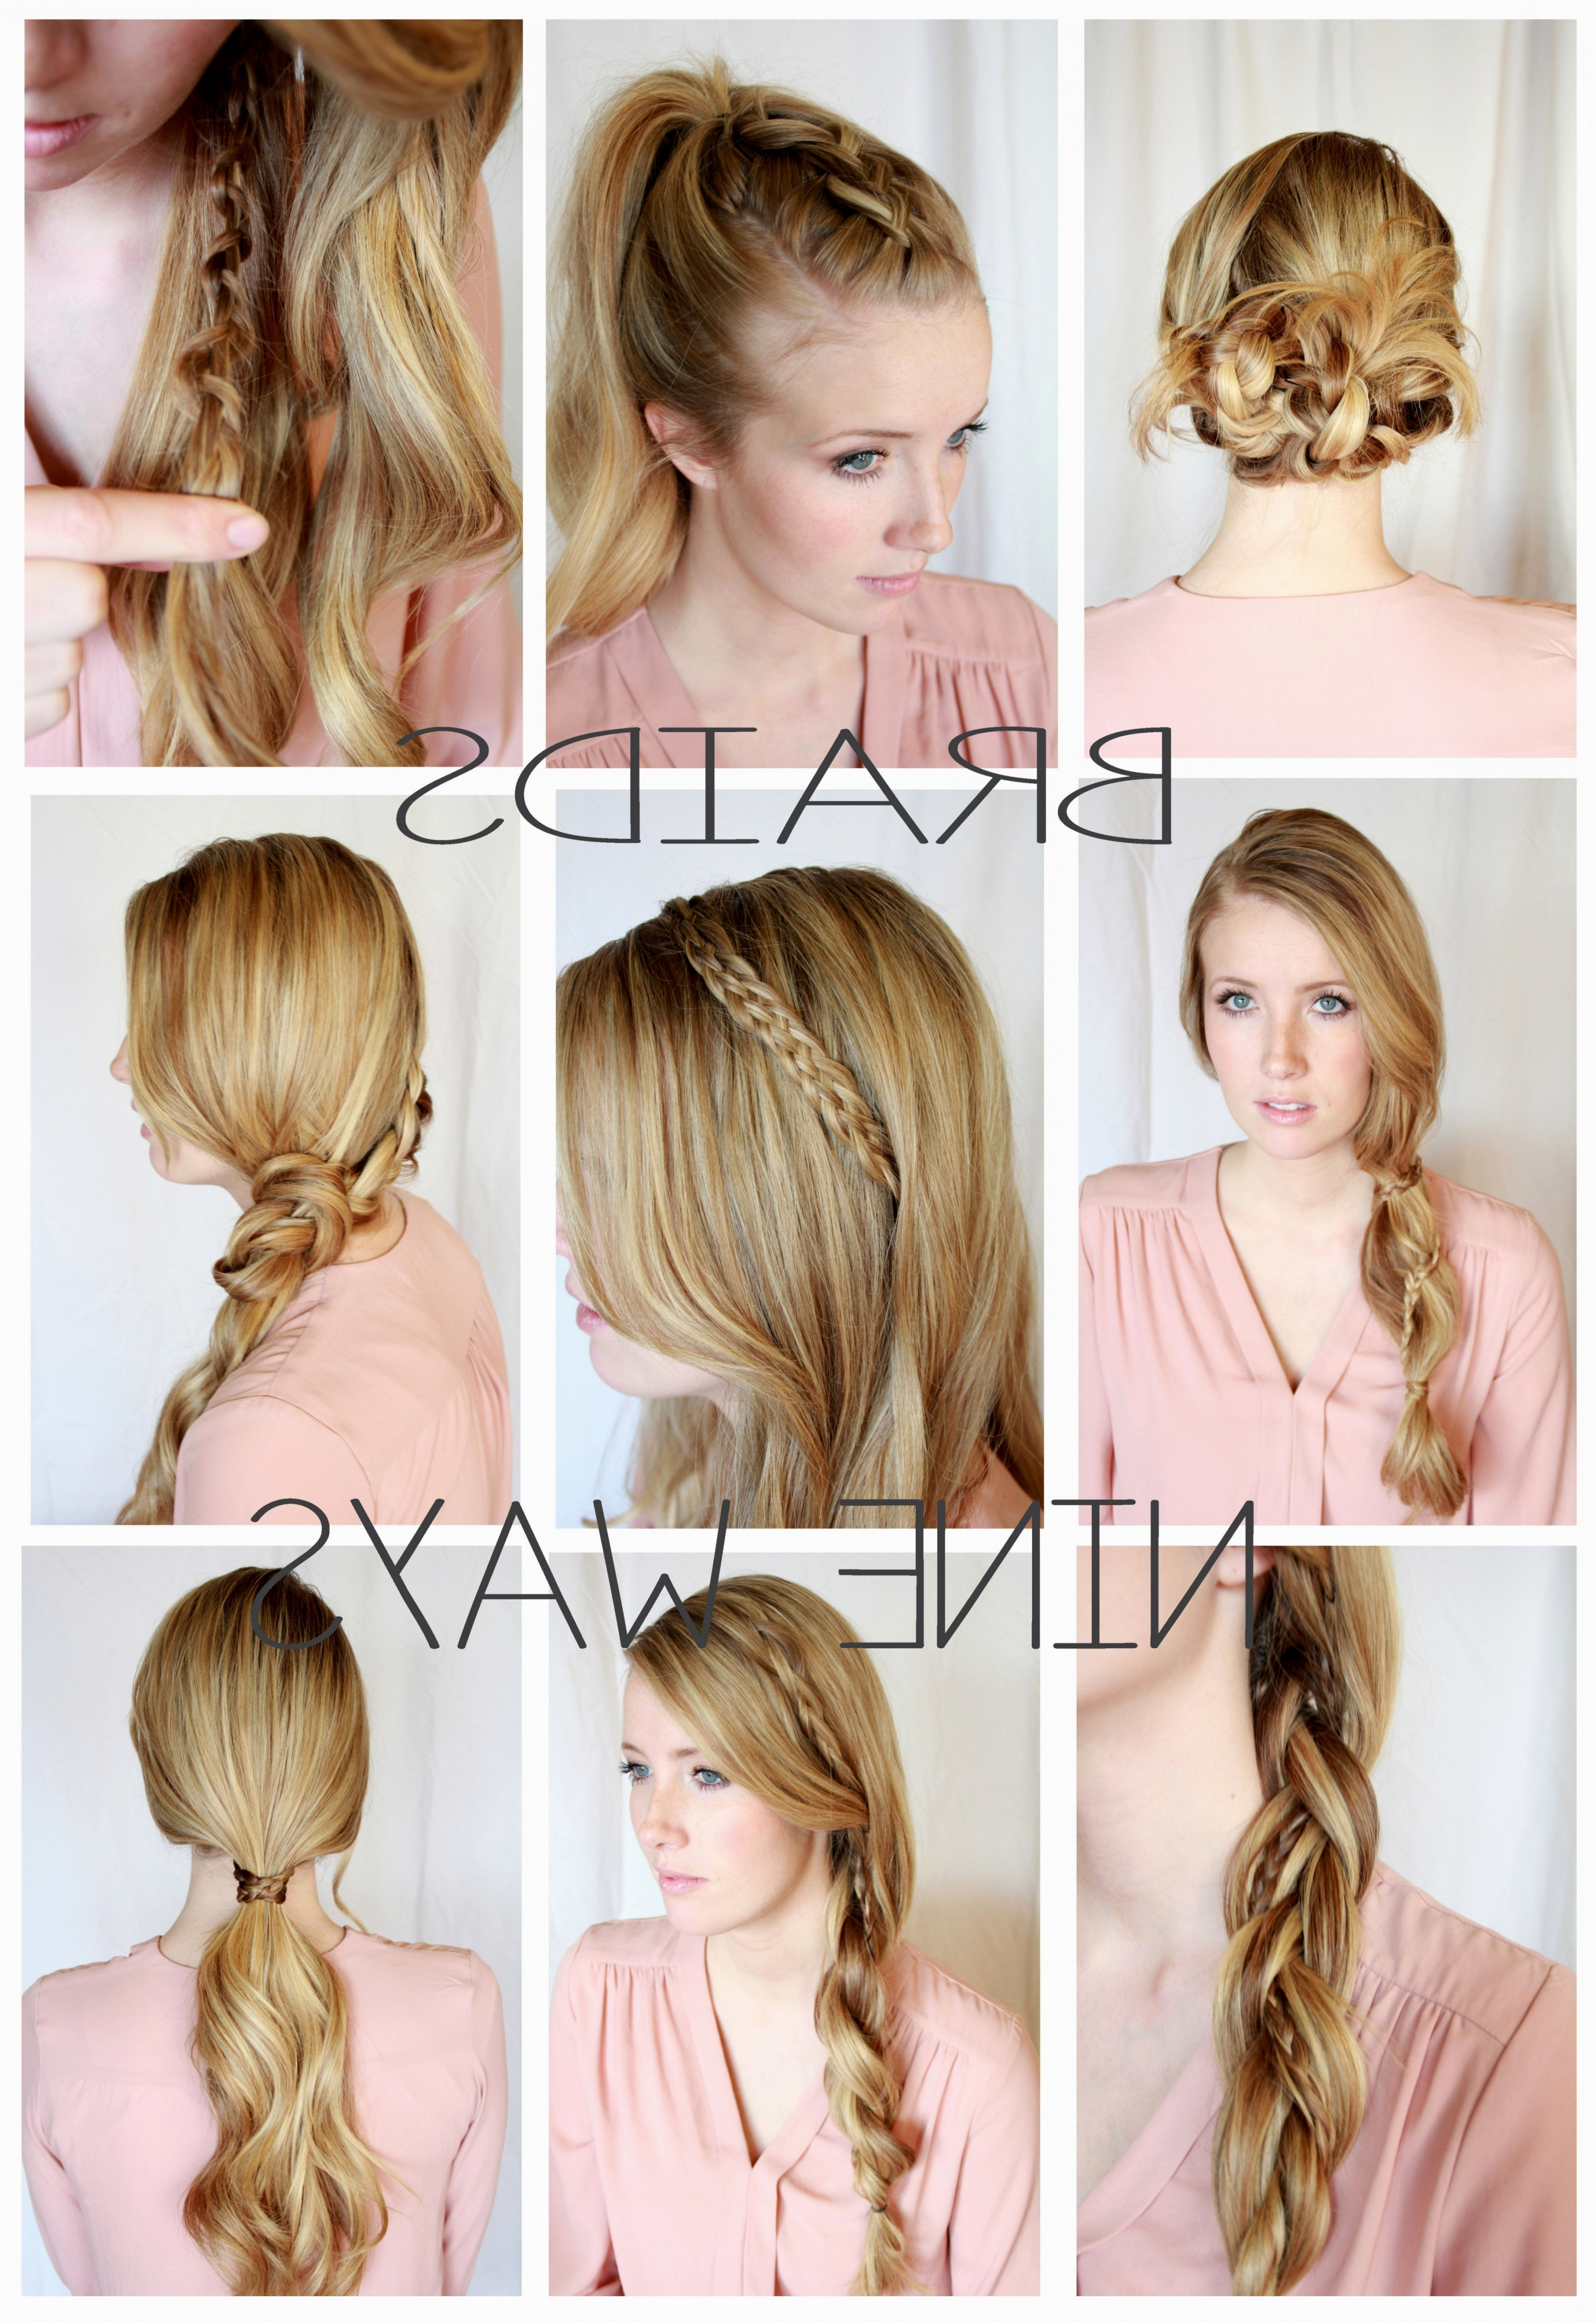 Most Current Easy Braided Hairstyles Throughout Cute Easy Braided Hairstyles Collection Of Solutions Cute Braid (View 8 of 15)